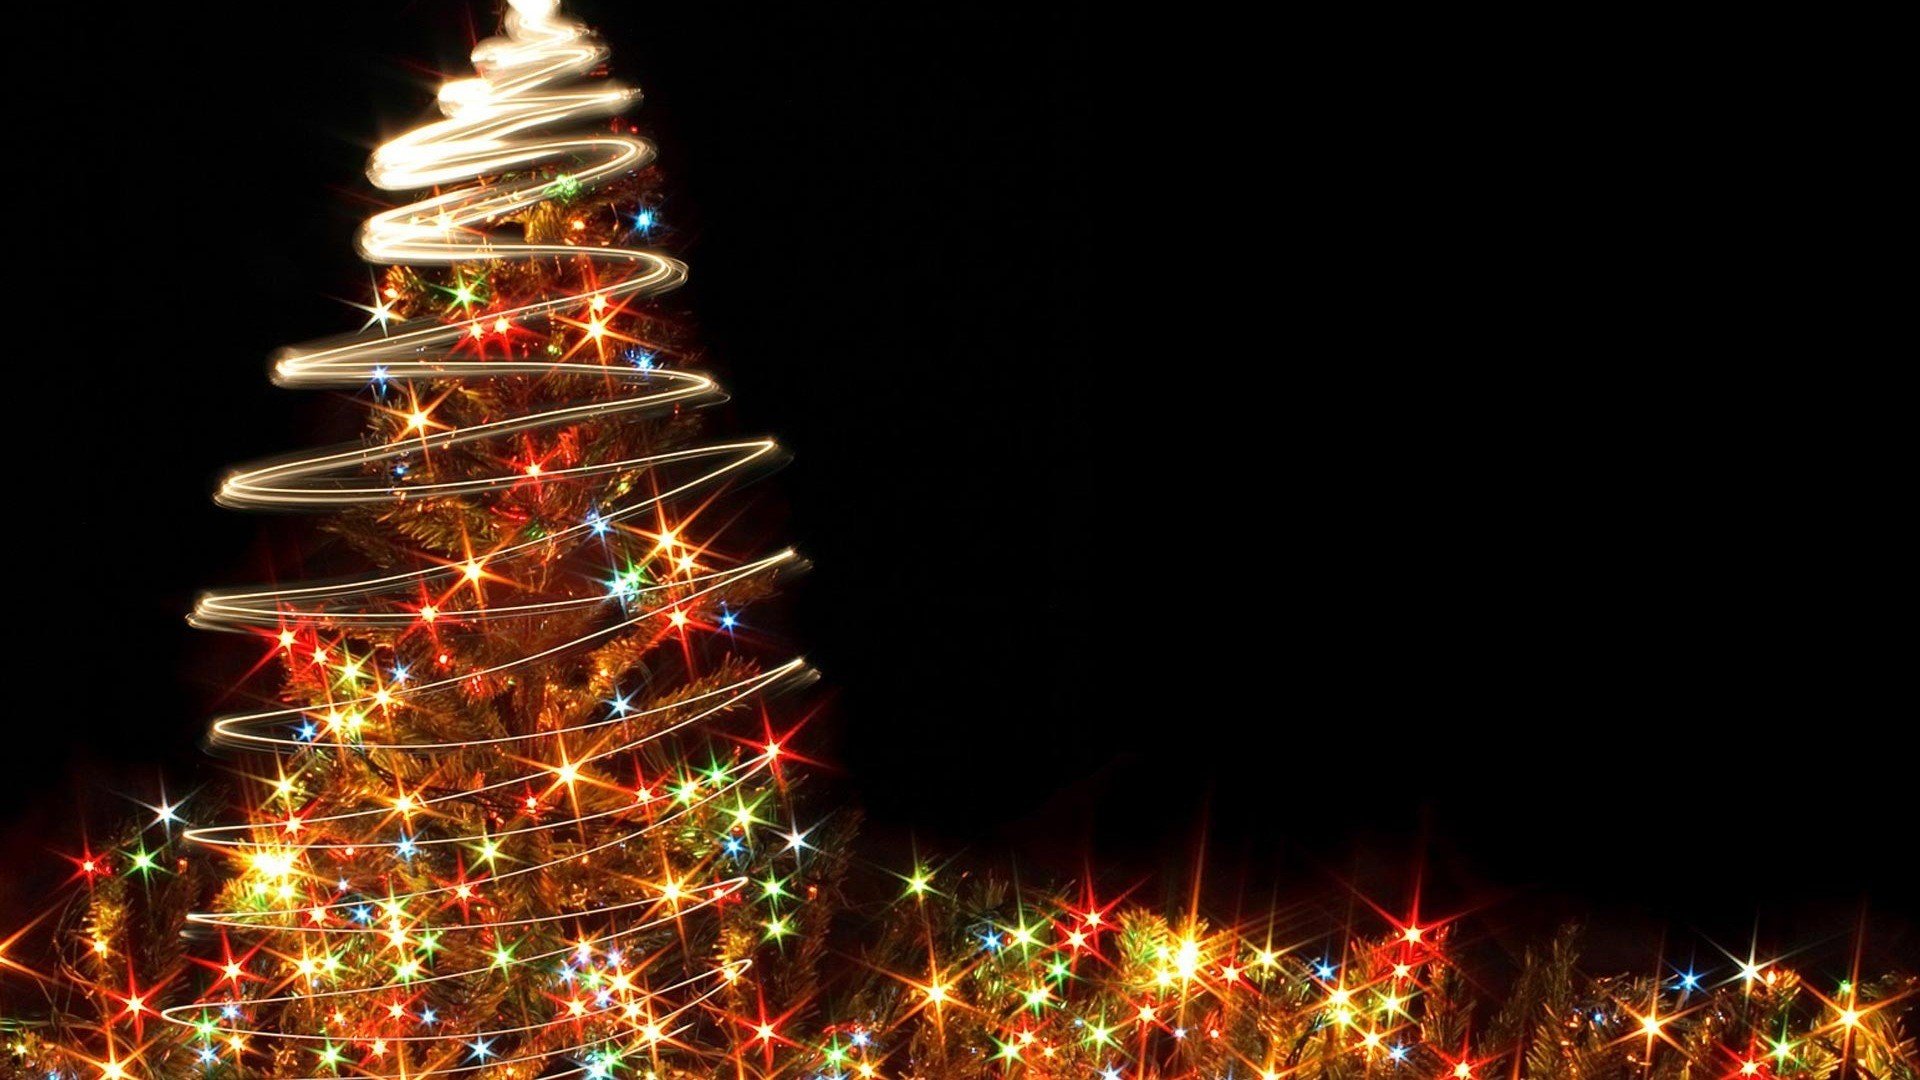 christmas tree wallpaper backgrounds (61+ images)